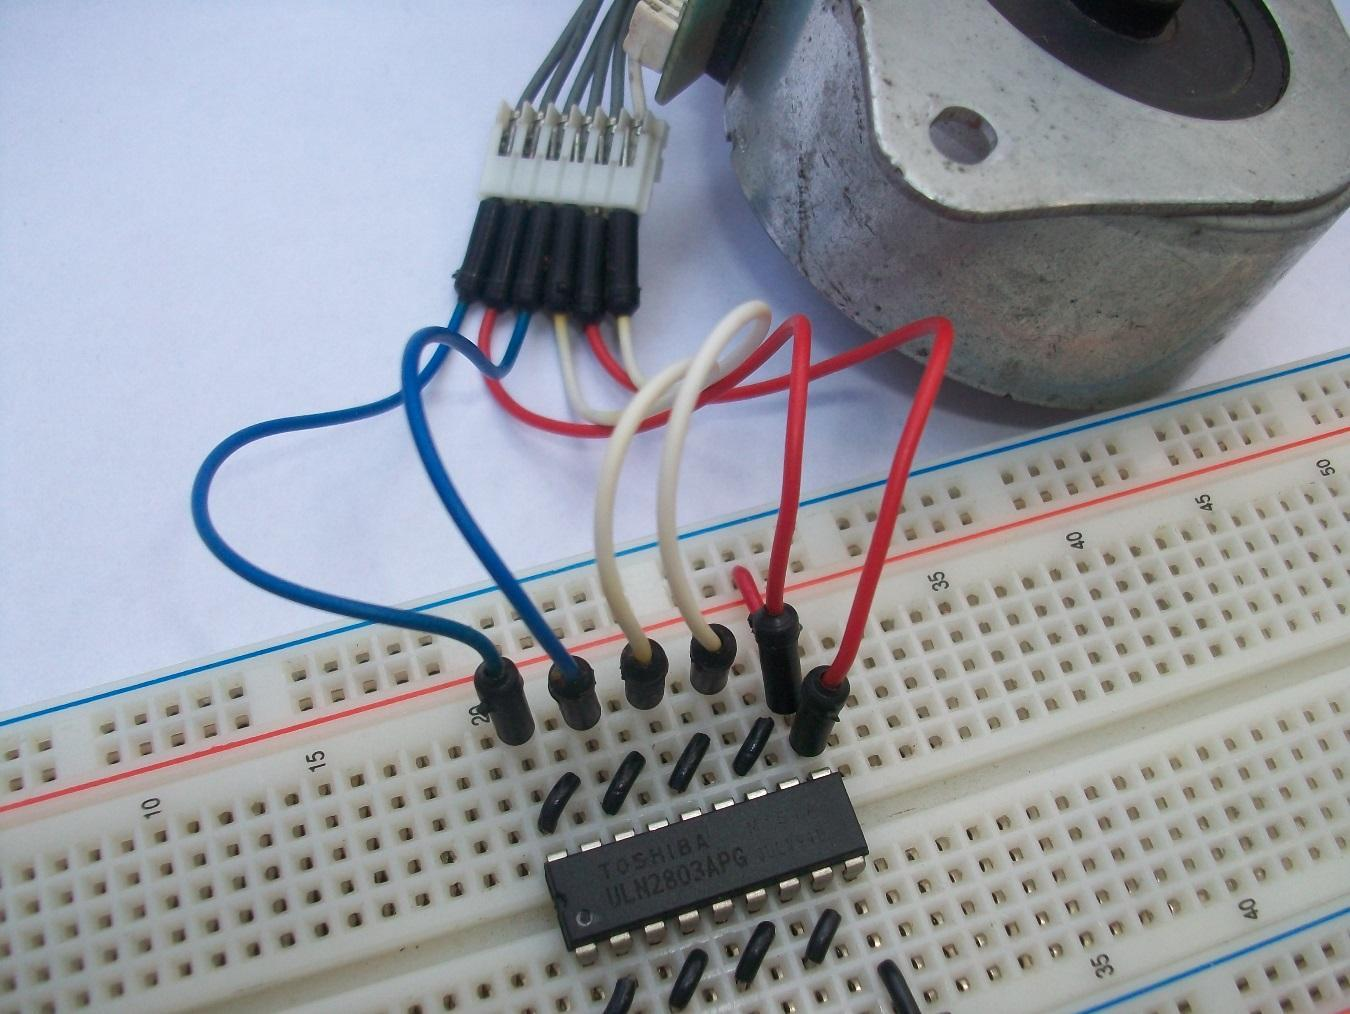 8051 Microcontroller Pin Diagram And Its Working Procedure